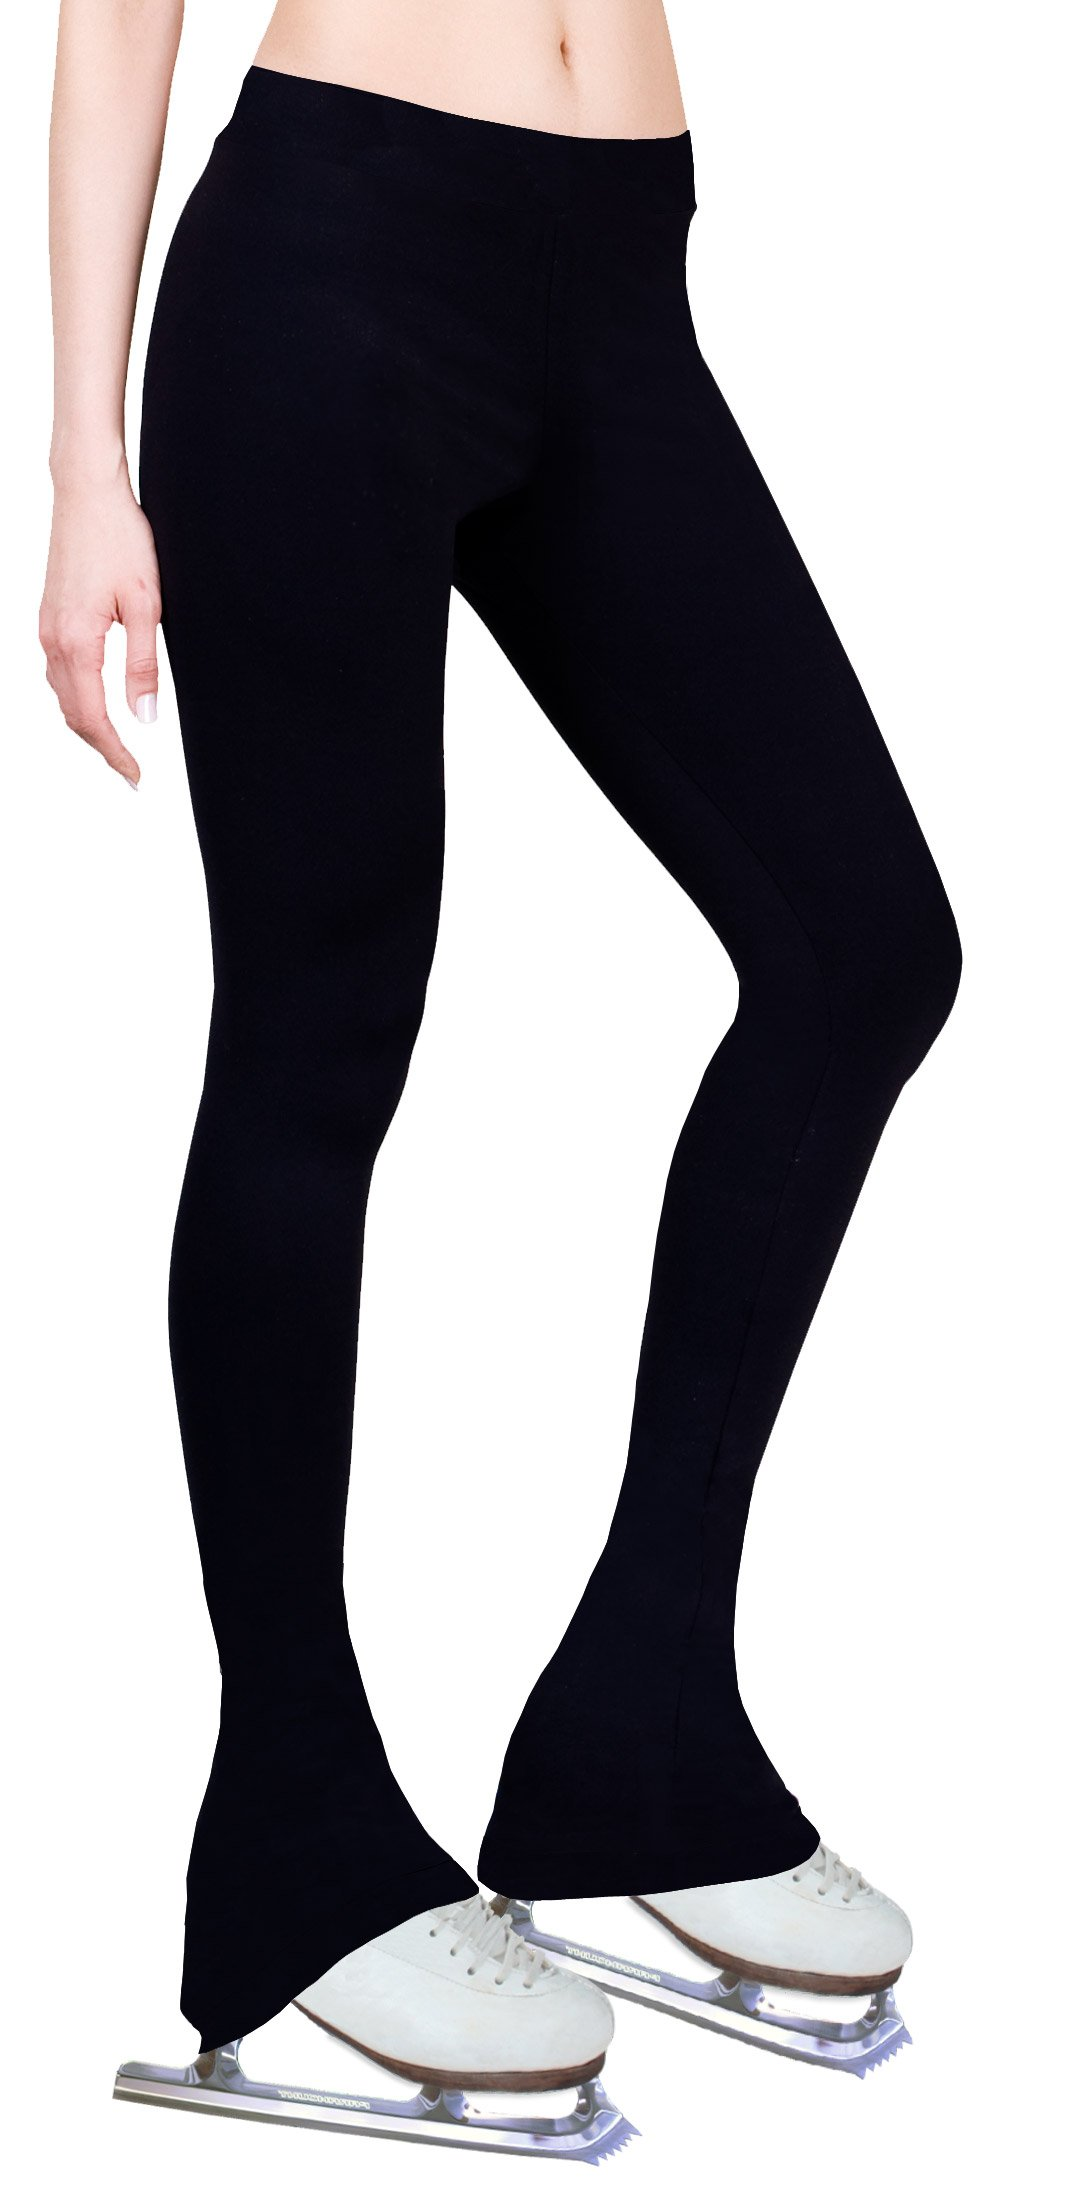 ny2 Sportswear Figure Skating Practice Pants - Black (Child Medium) by ny2 Sportswear